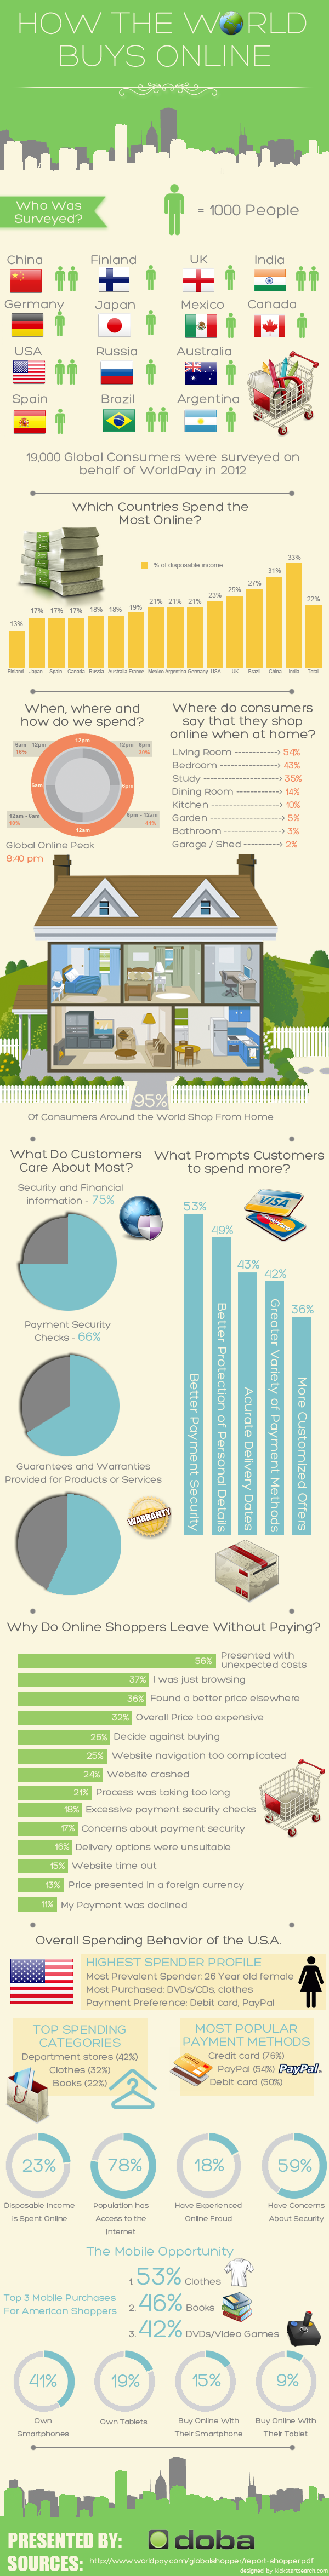 Global-Online-Payment